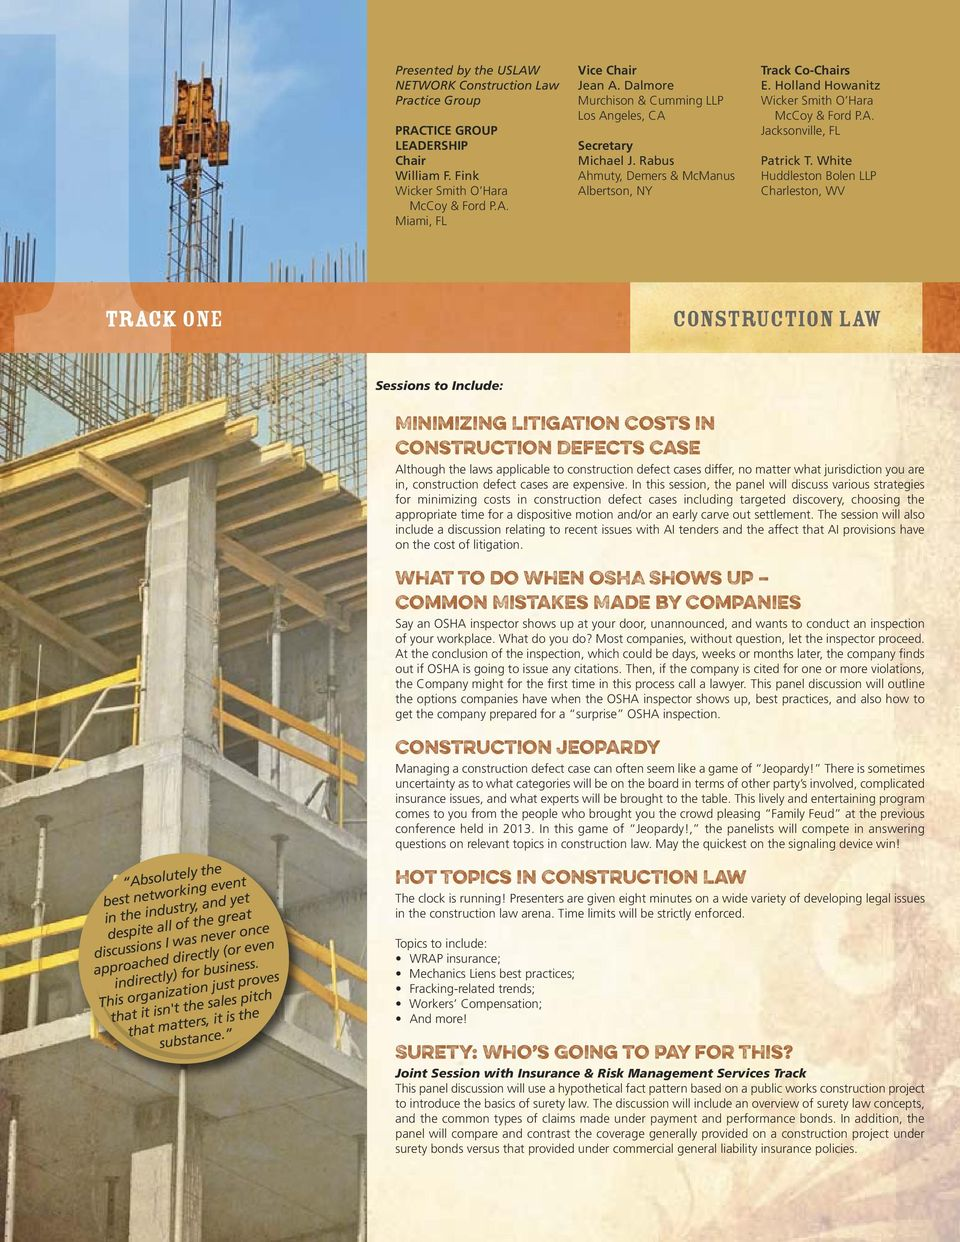 White Huddleston Bolen LLP Charleston, WV TRACK ONE Construction Law Sessions to Include: Minimizing Litigation Costs in Construction Defects Case Although the laws applicable to construction defect